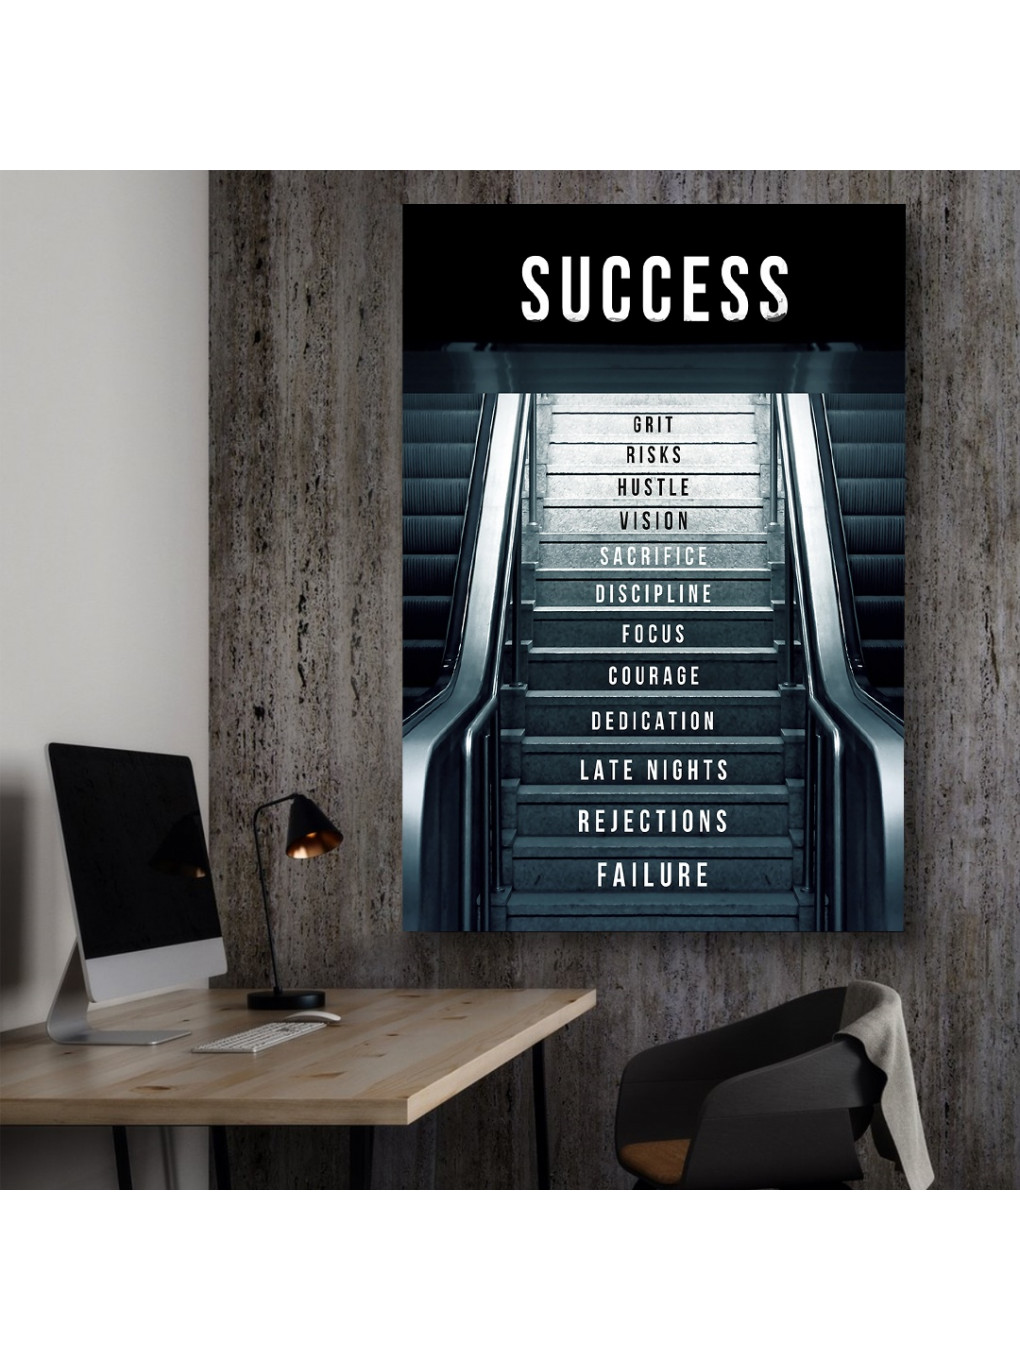 Take the Stairs - Success_SUC084_5